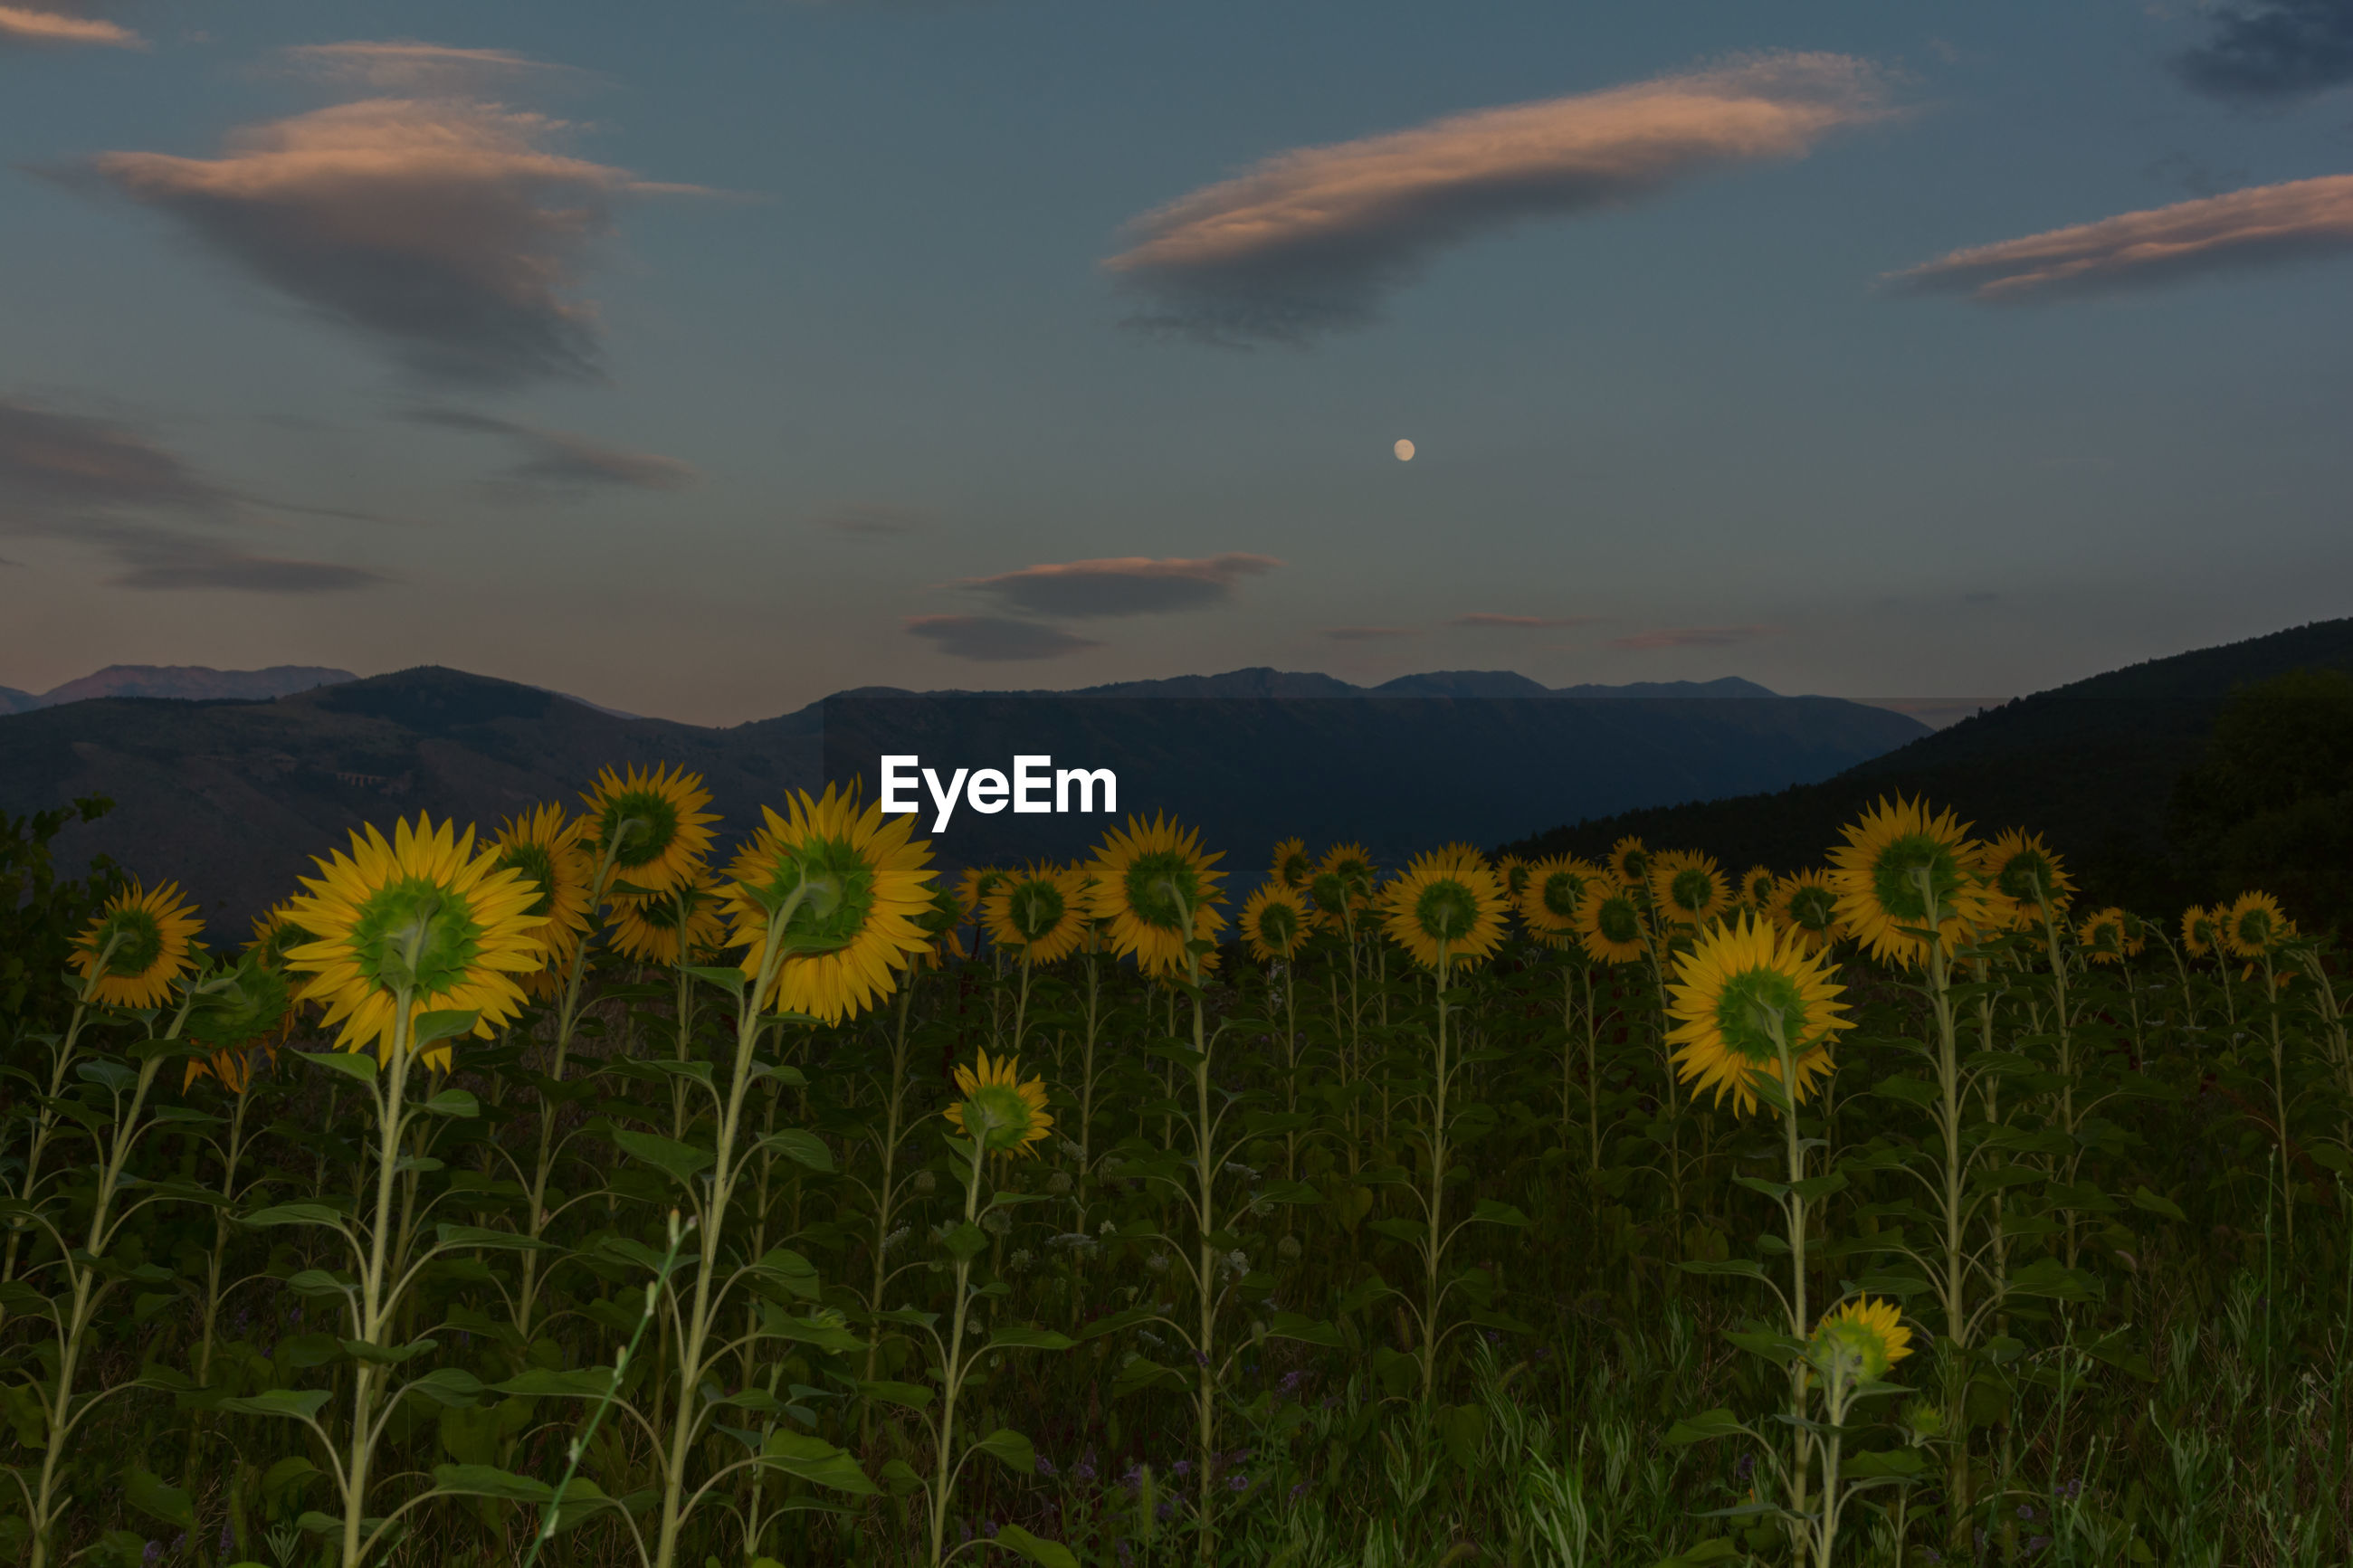 SCENIC VIEW OF SUNFLOWER FIELD AGAINST SKY DURING SUNRISE